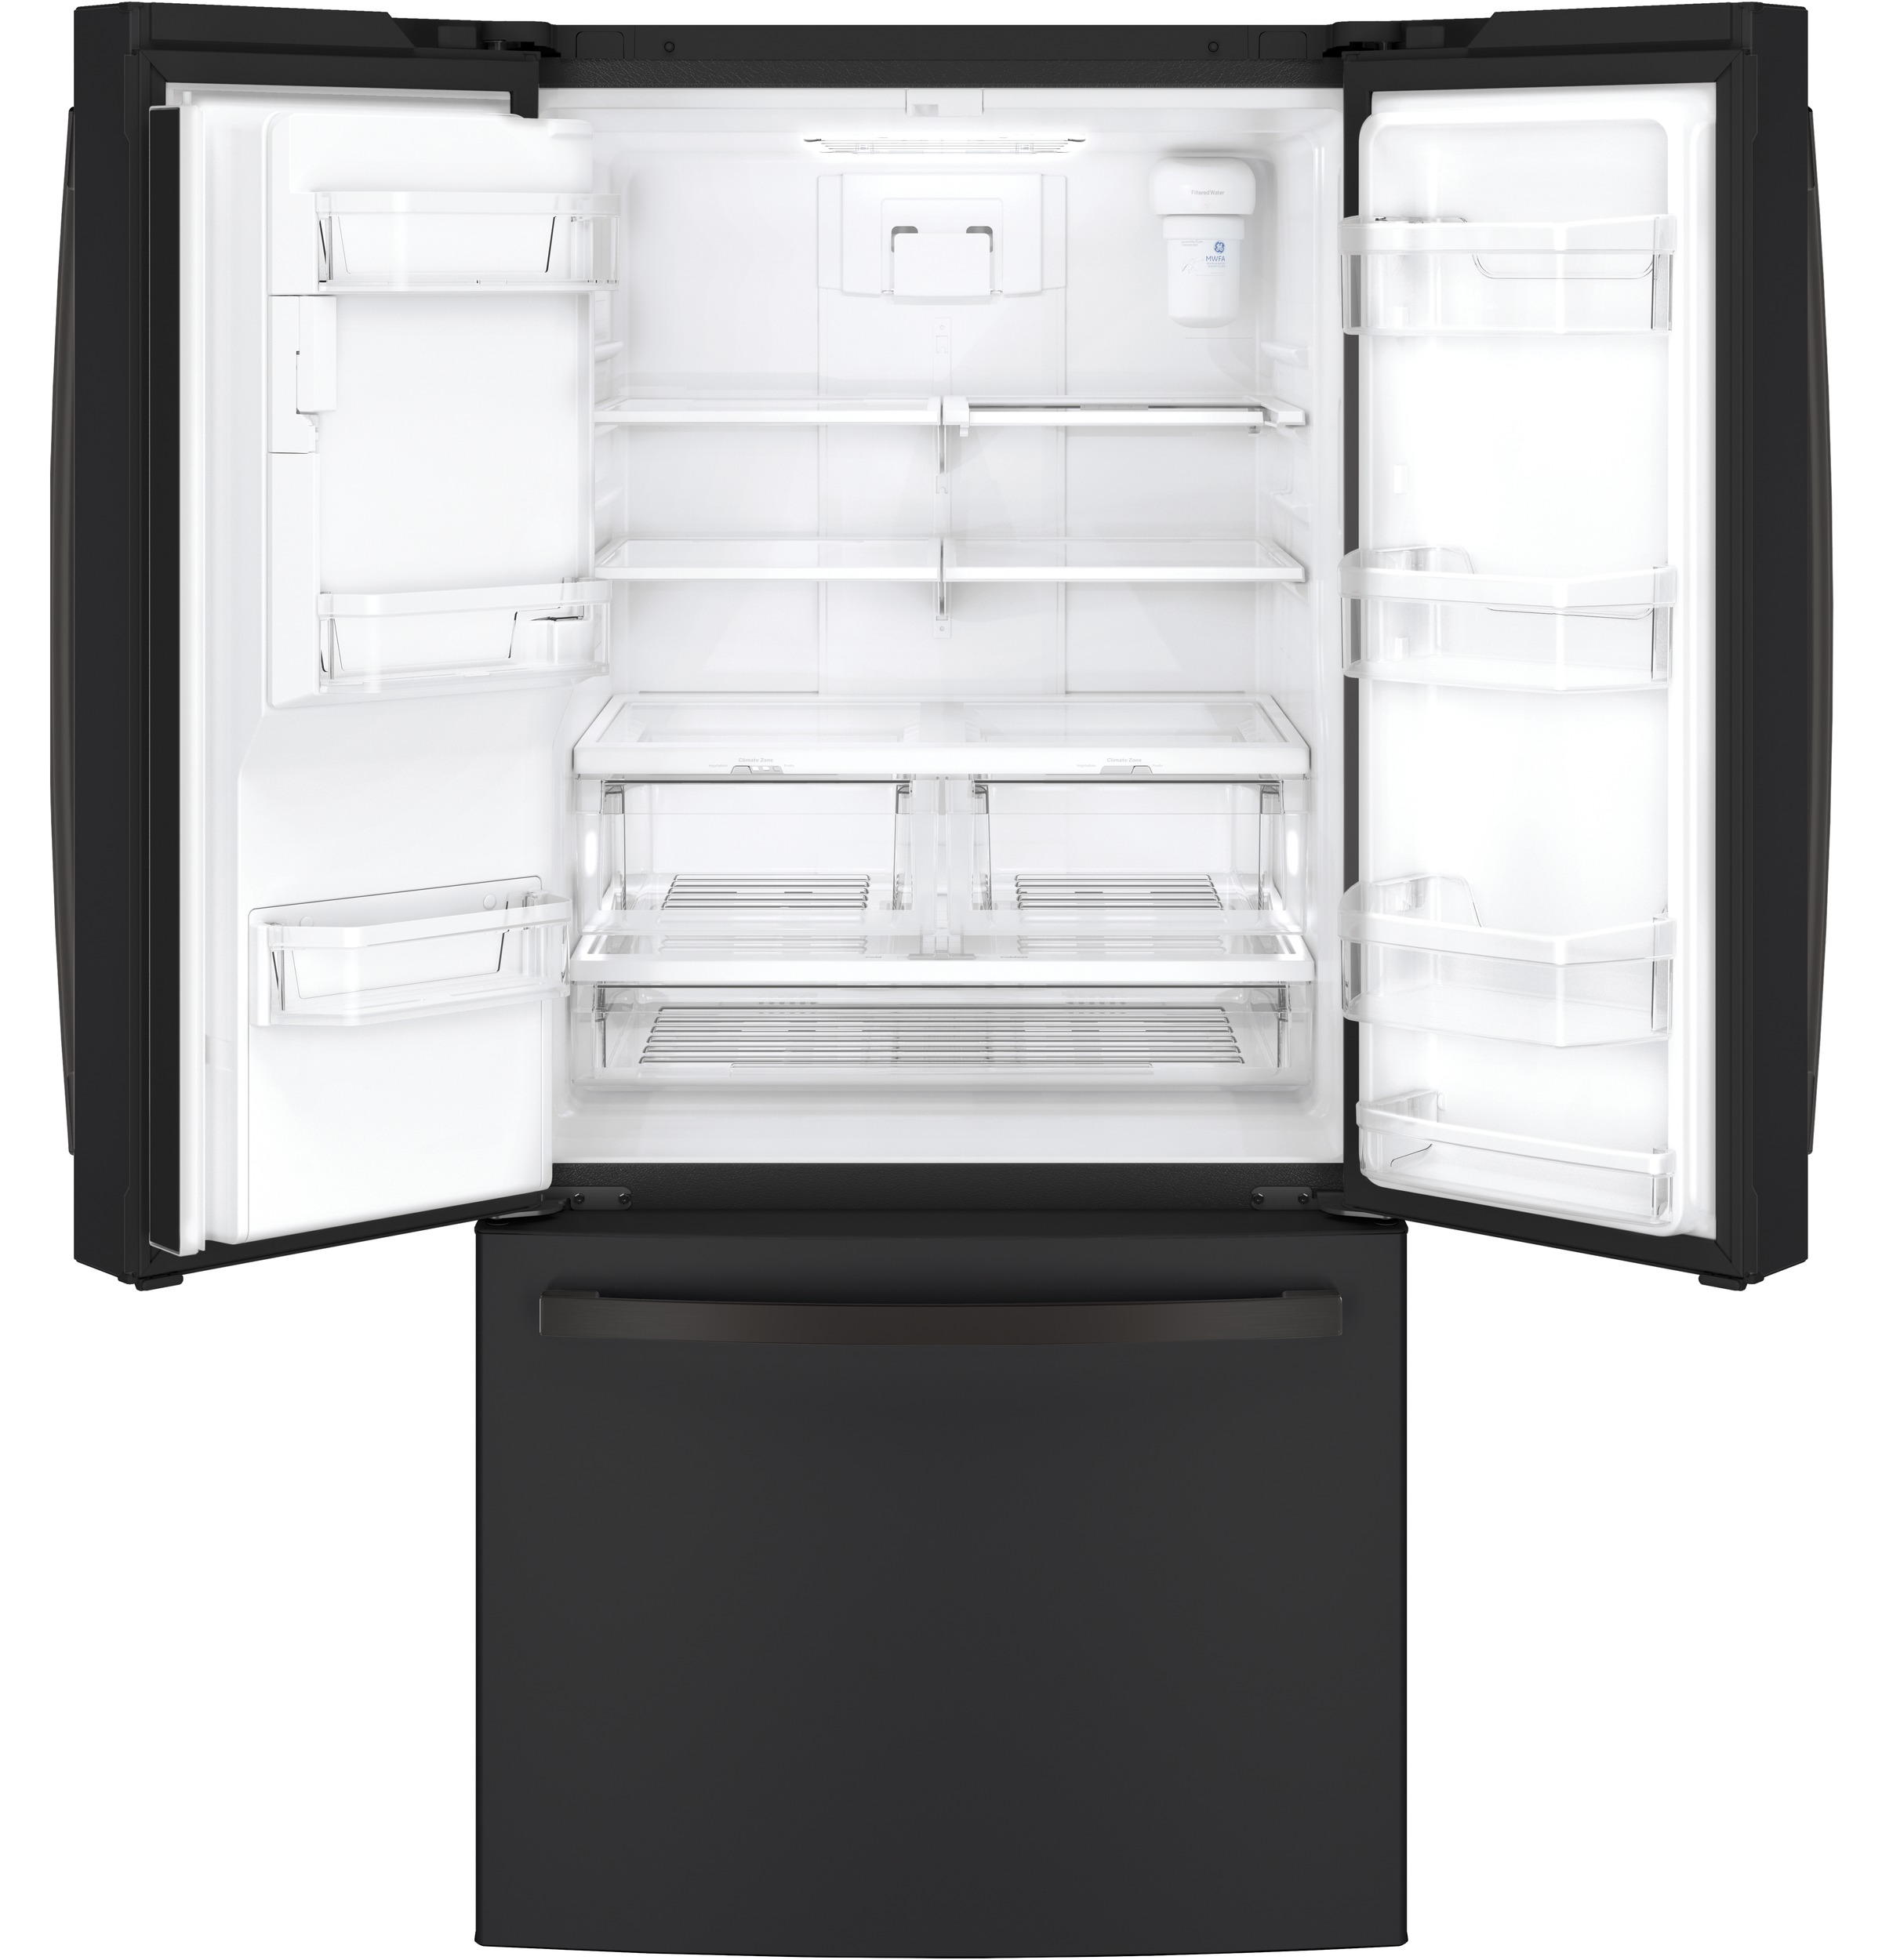 Model: GYE18JEMDS | GE GE® ENERGY STAR® 17.5 Cu. Ft. Counter-Depth French-Door Refrigerator